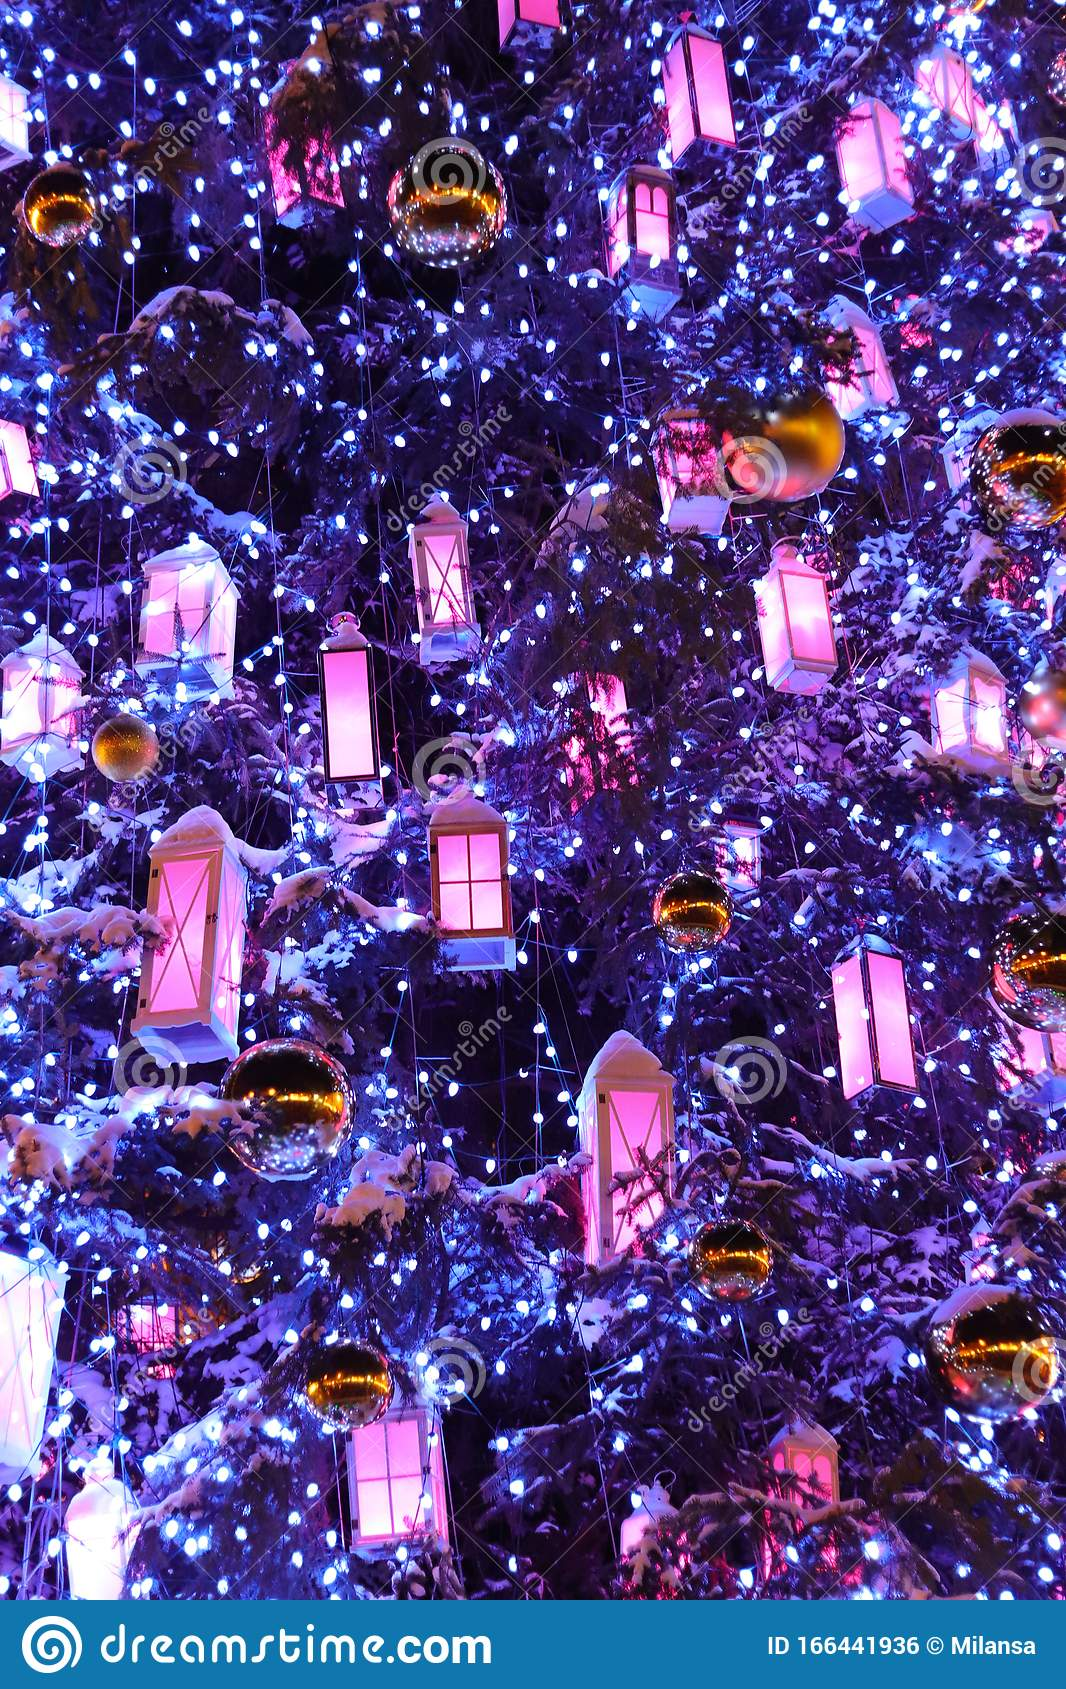 Christmas Tree Closeup Of Phantom Blue Color Background With White Wooden Lanterns Golden Xmas Balls And Lights Stock Photo Image Of City Happy 166441936